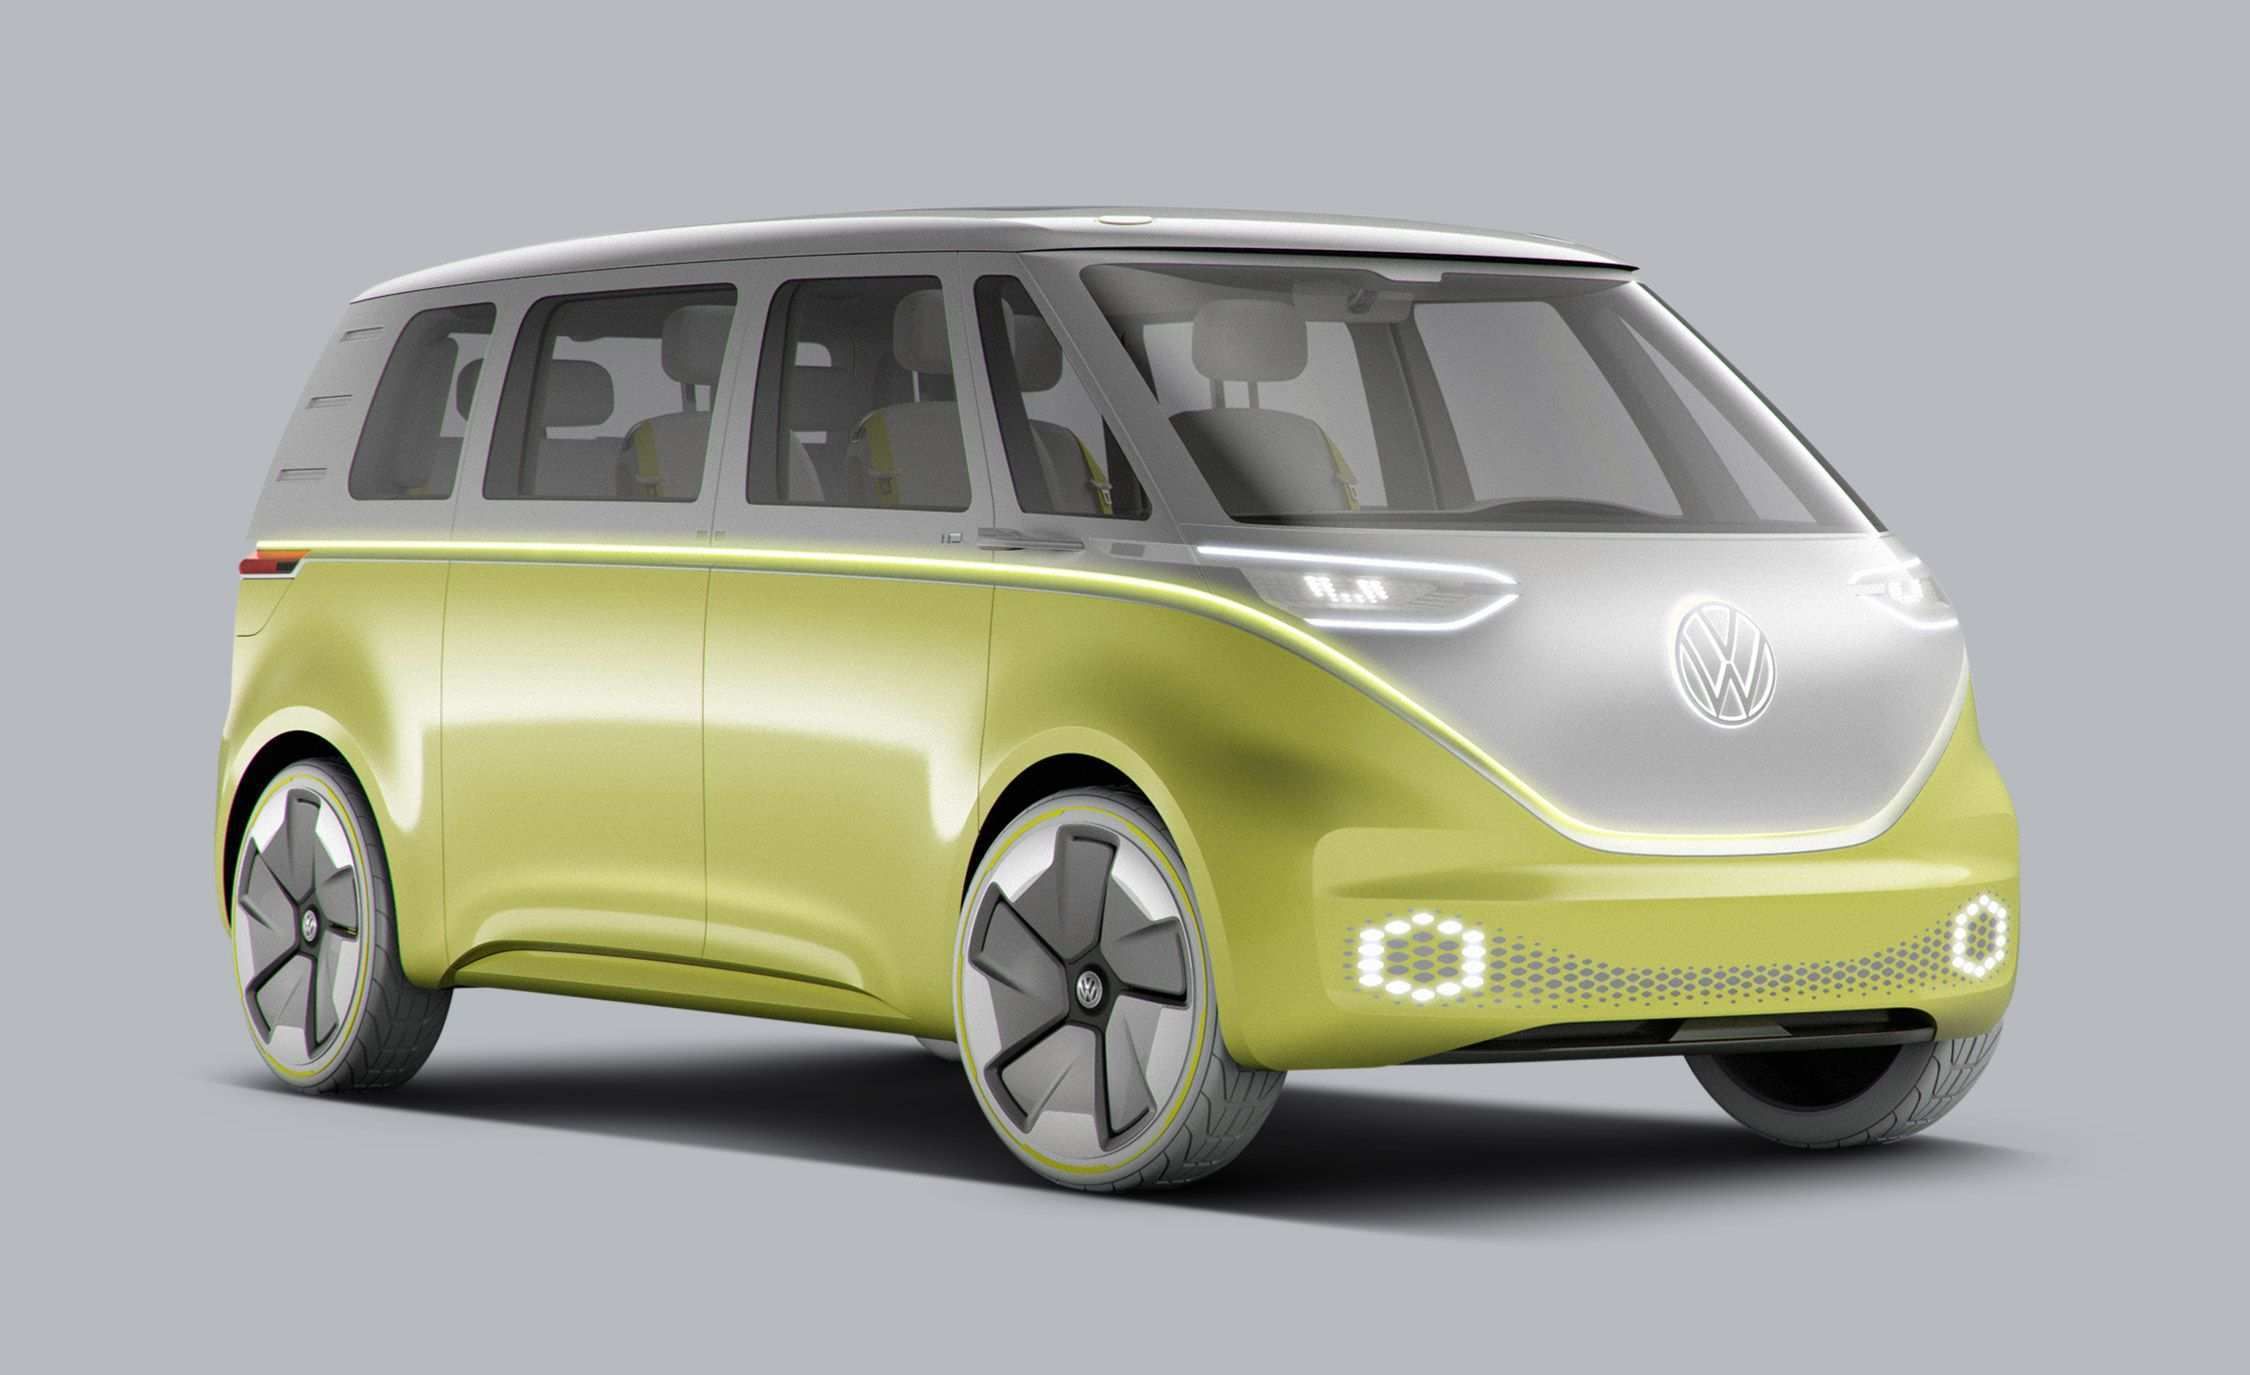 25 Concept of 2019 Volkswagen Bus Interior with 2019 Volkswagen Bus